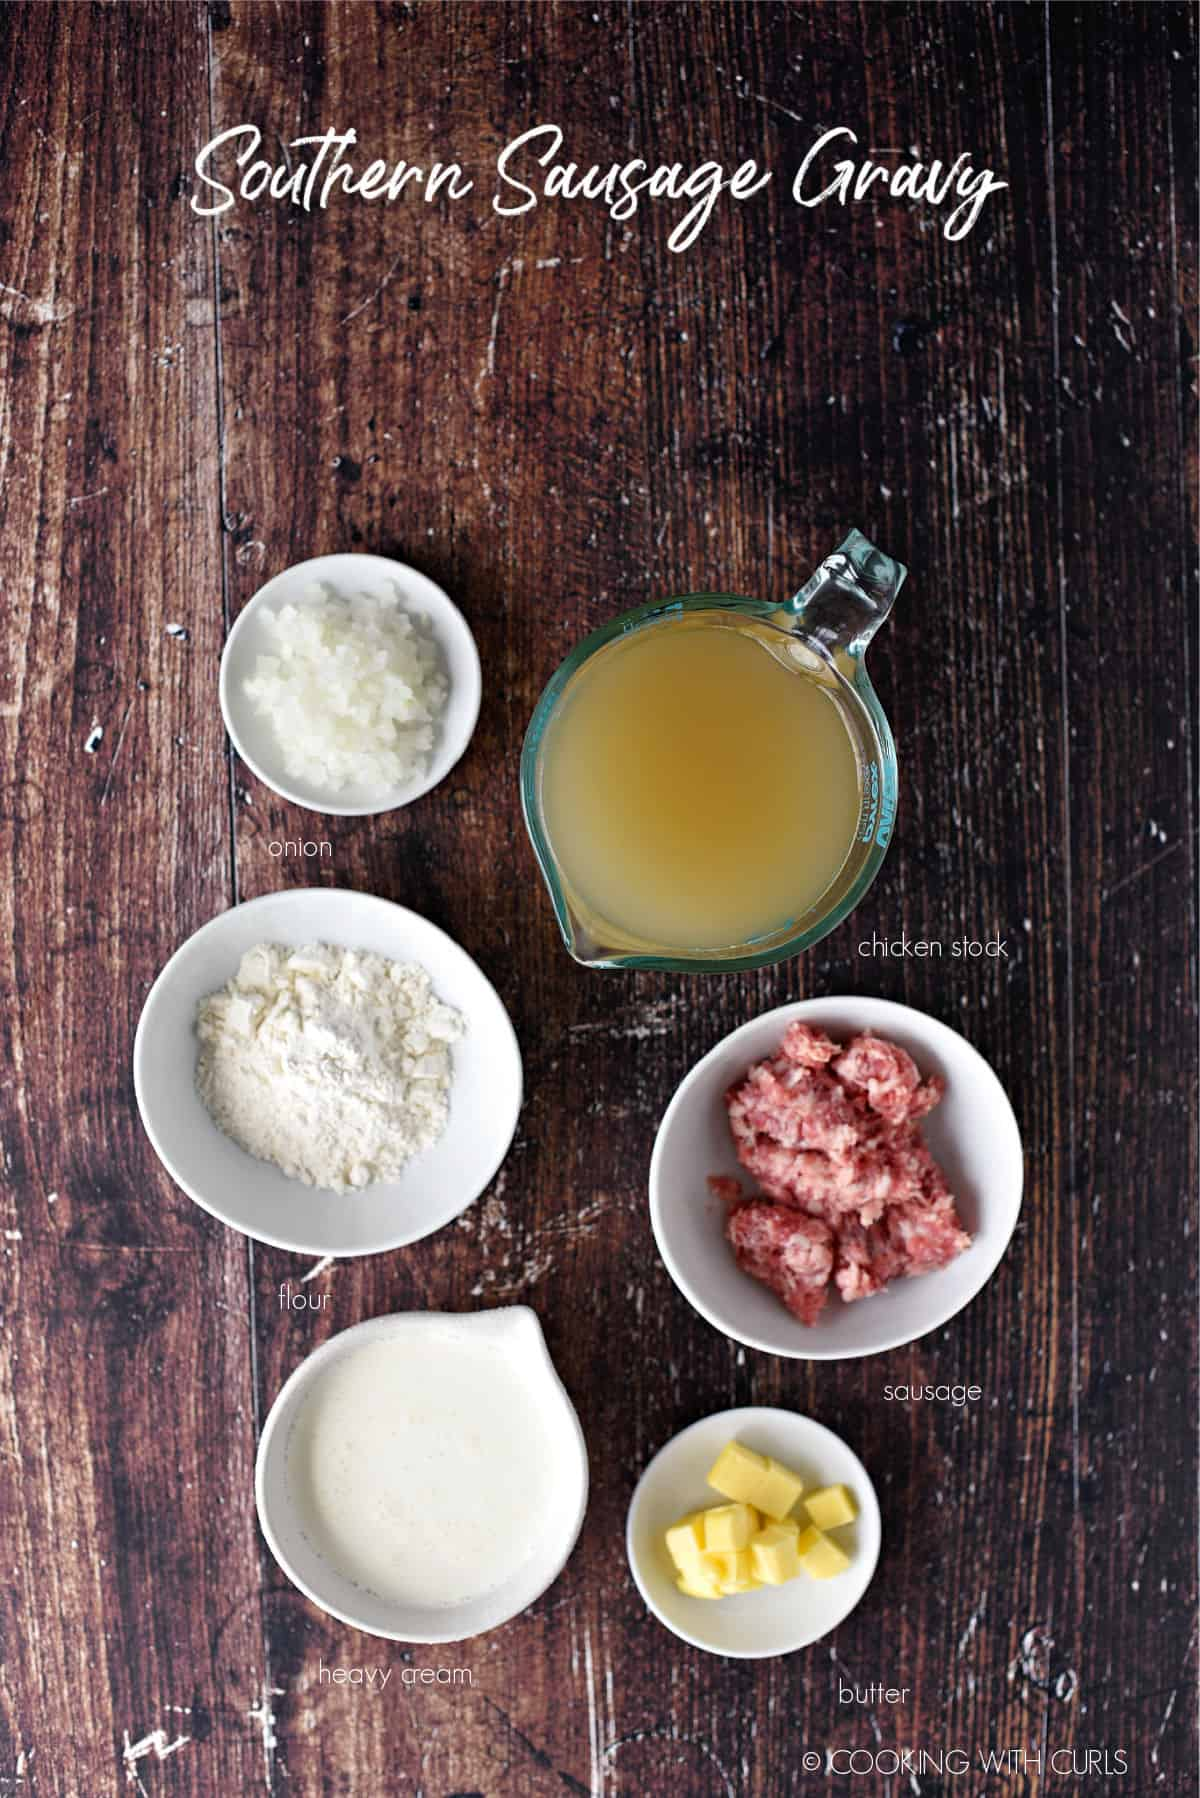 looking down on the ingredients needed to make southern sausage gravy; onion, flour, heavy cream, butter, sausage and chicken stock.